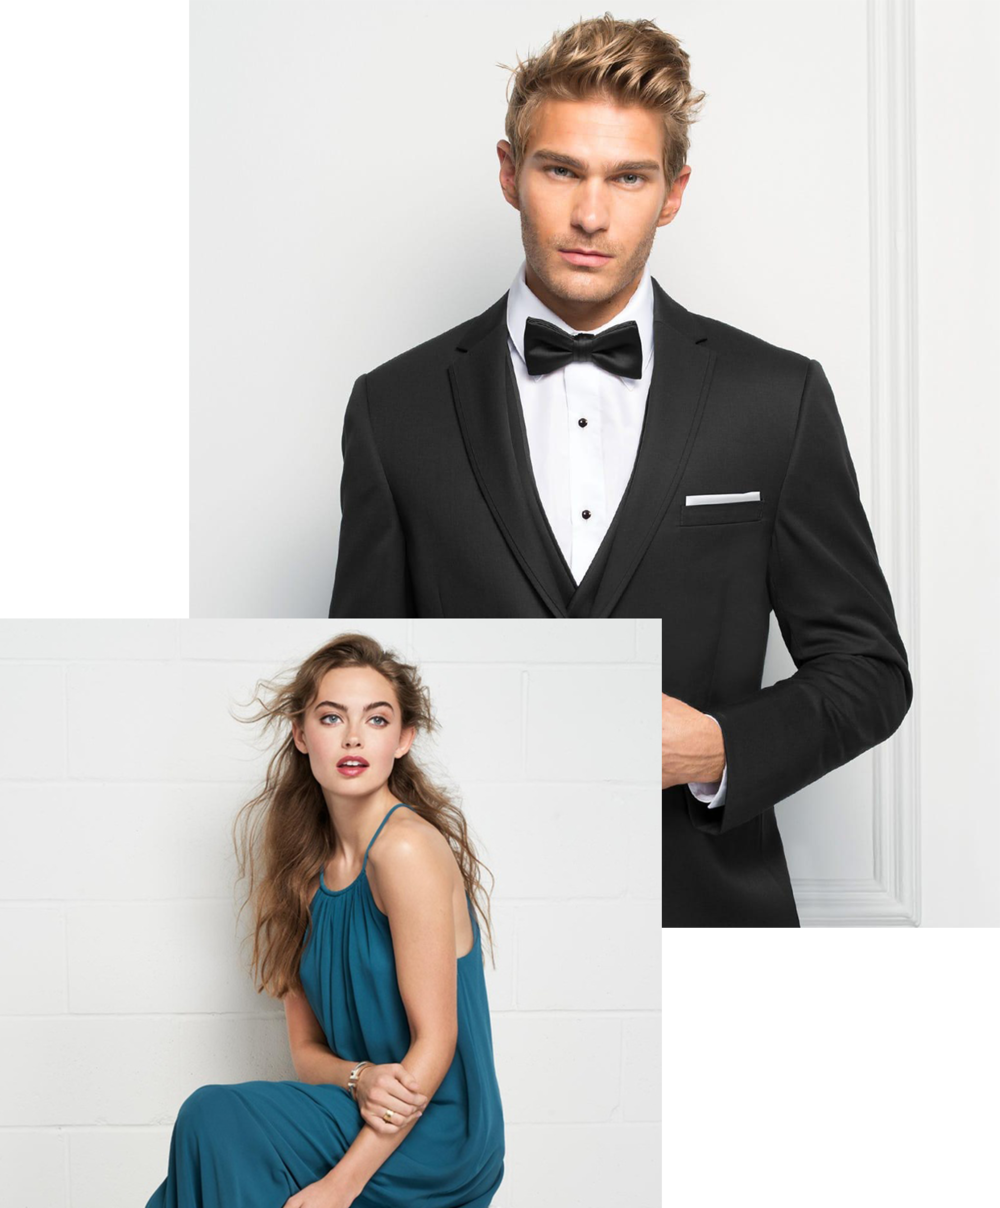 outfit your entourage - We'll have your crew looking (almost) as good as you do.